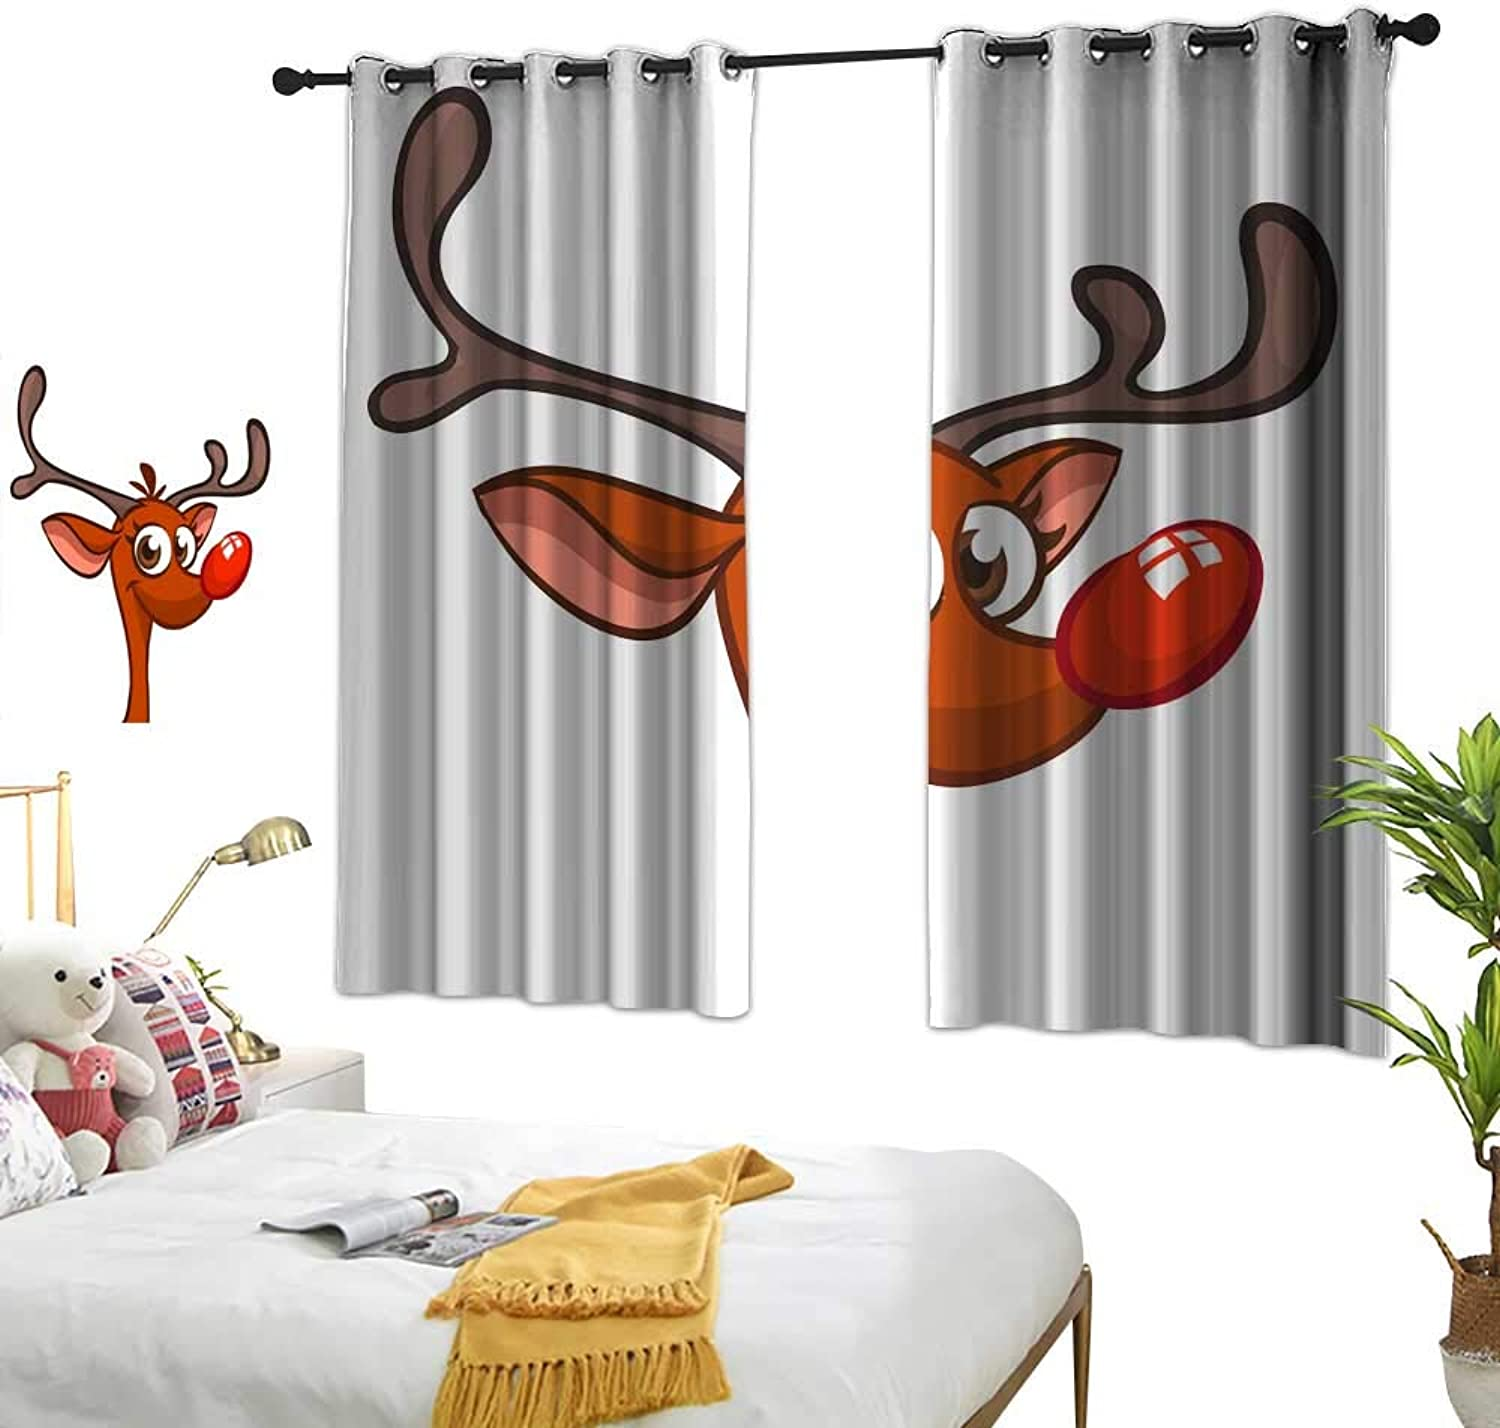 Wwwhsl Personality Series Decoration Funny Cartoon red Nose Reindeer Rudolph Character Christmas Vector Illustration Summer Blackout Curtain Polyester Bedroom Living Room W62.9 xL62.9